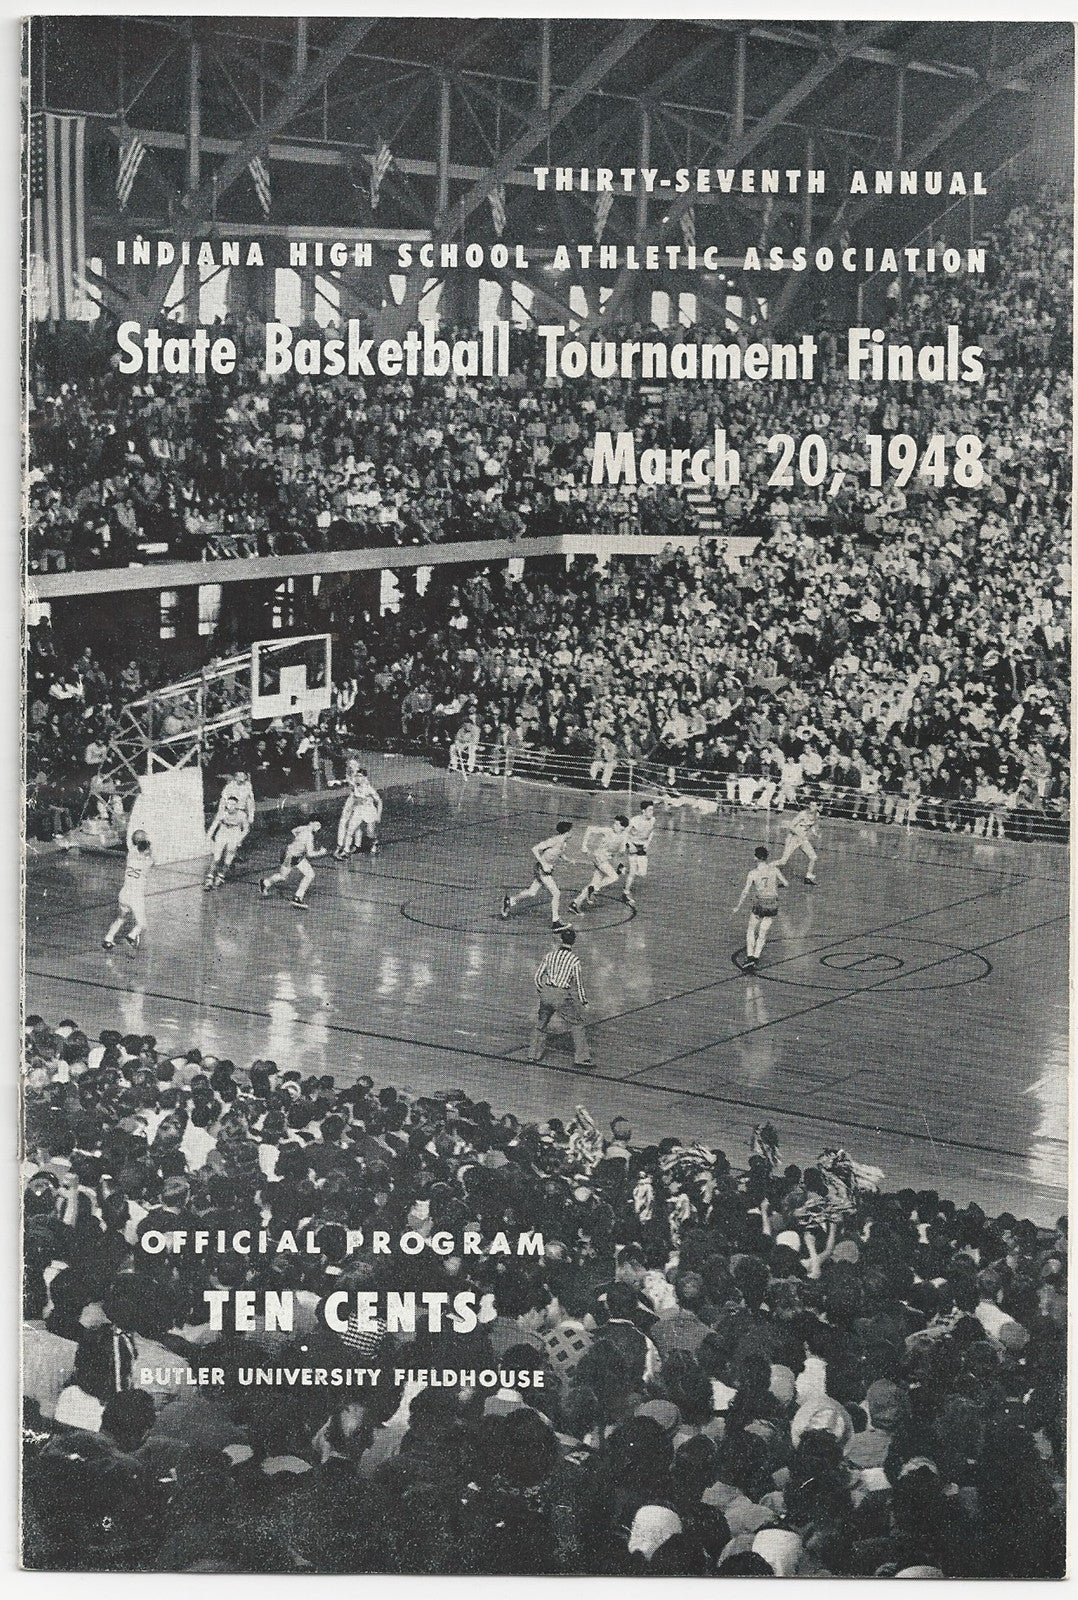 1948 Indiana High School Basketball State Finals Program - Vintage Indy Sports